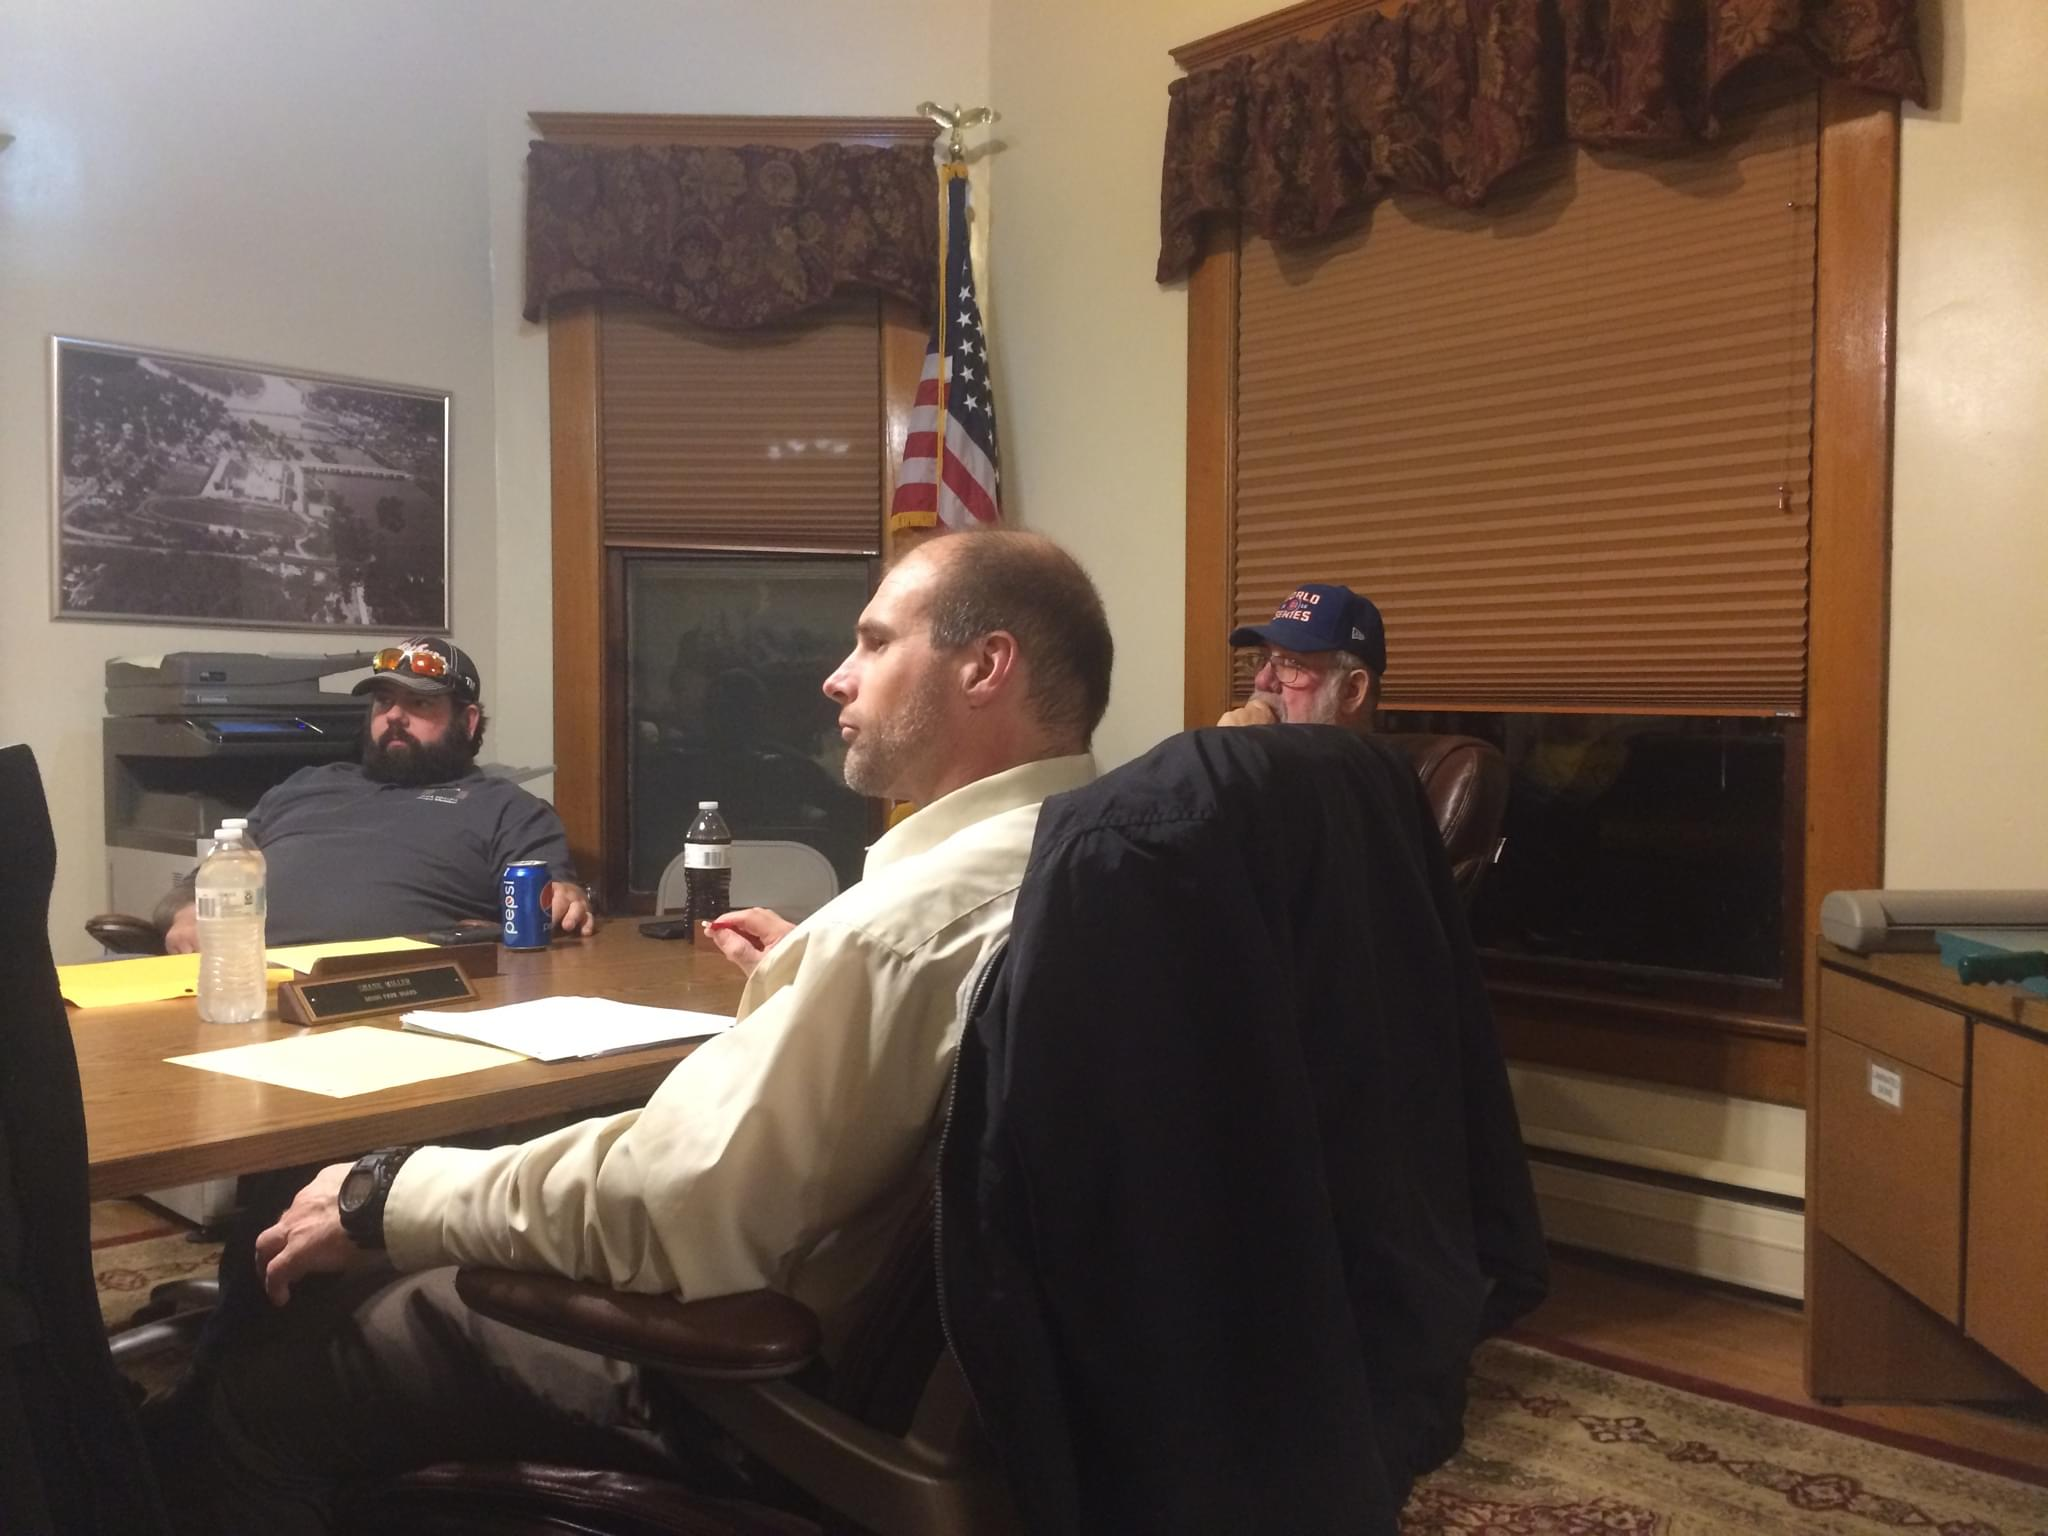 Hunters and Non-Hunters Debate Over Access to Meadows Property at Dixon Park Board Meeting